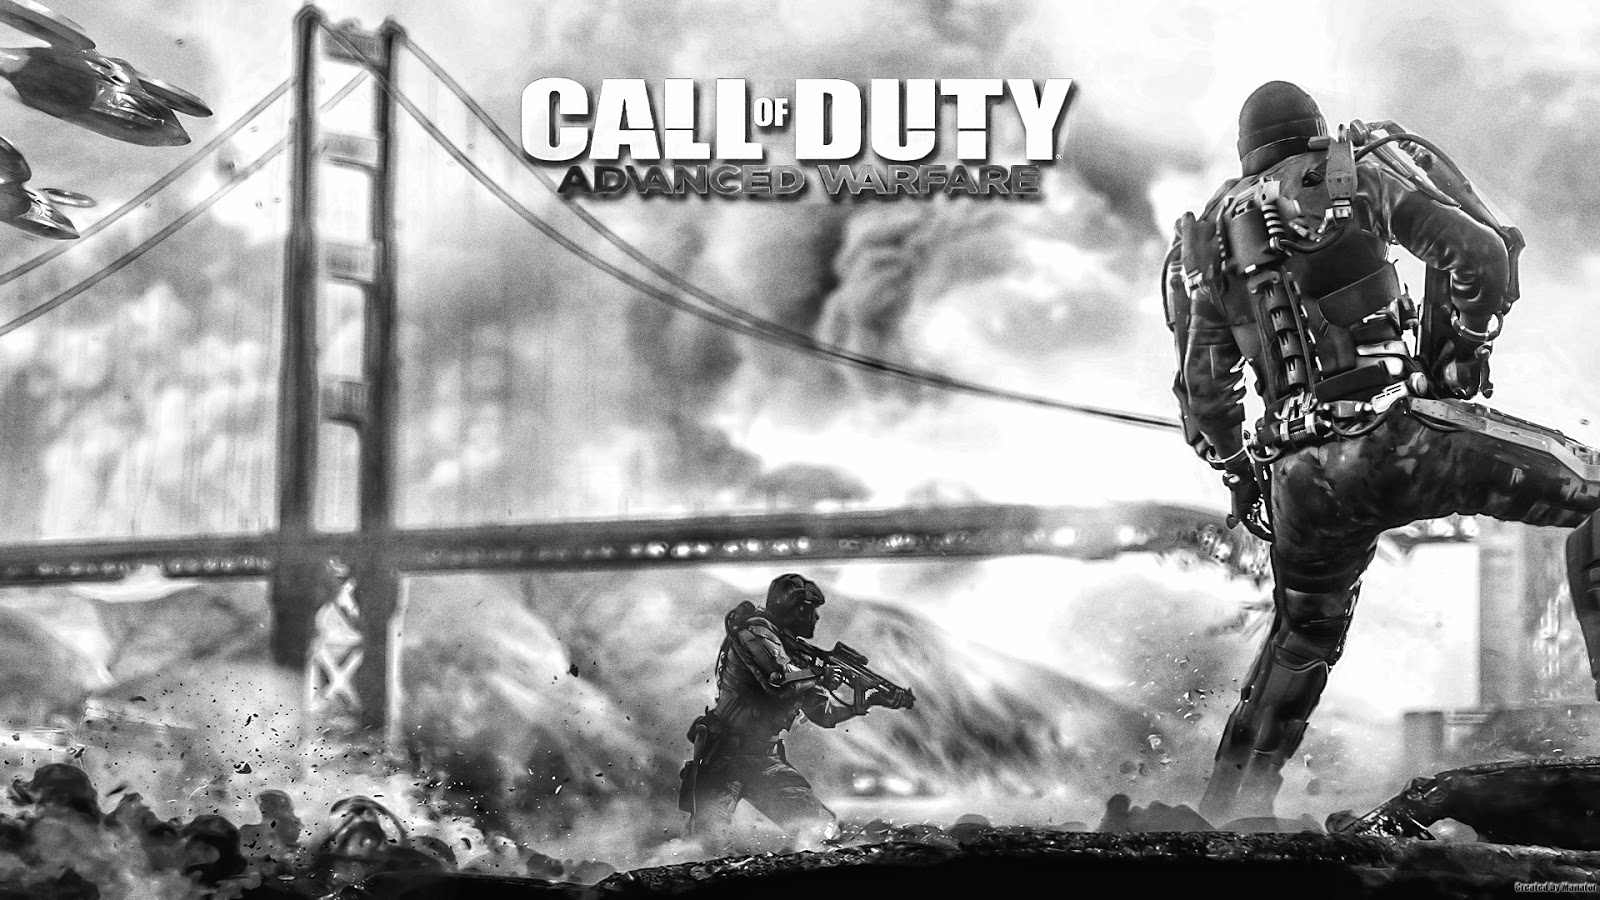 Call of duty advanced warfare wallpaper HD 1080p